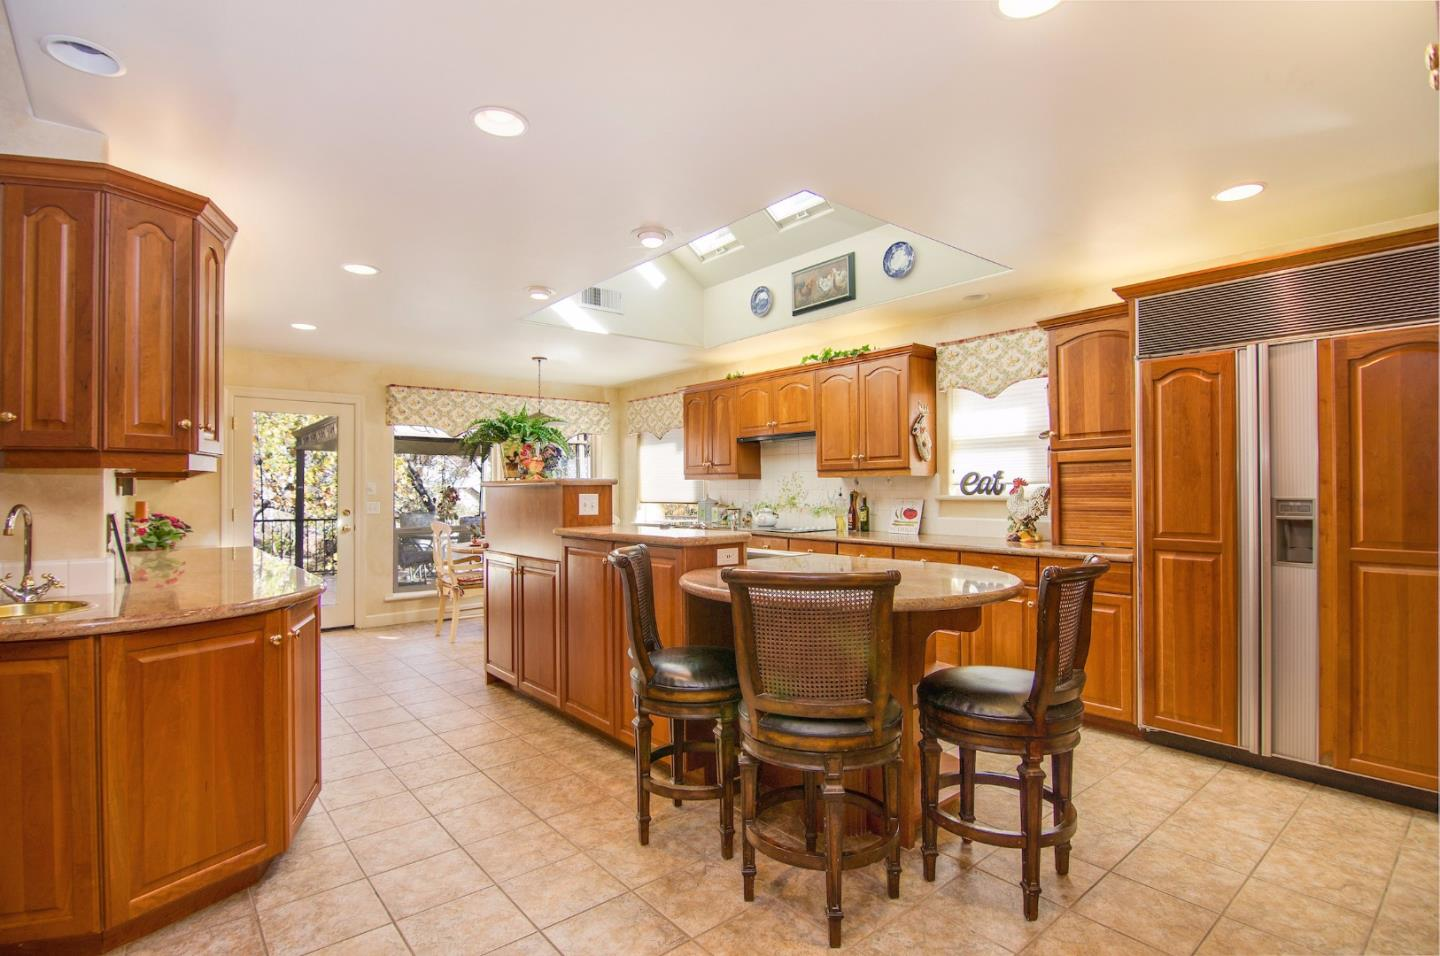 Additional photo for property listing at 17622 Chaparral Drive  Penn Valley, カリフォルニア 95946 アメリカ合衆国